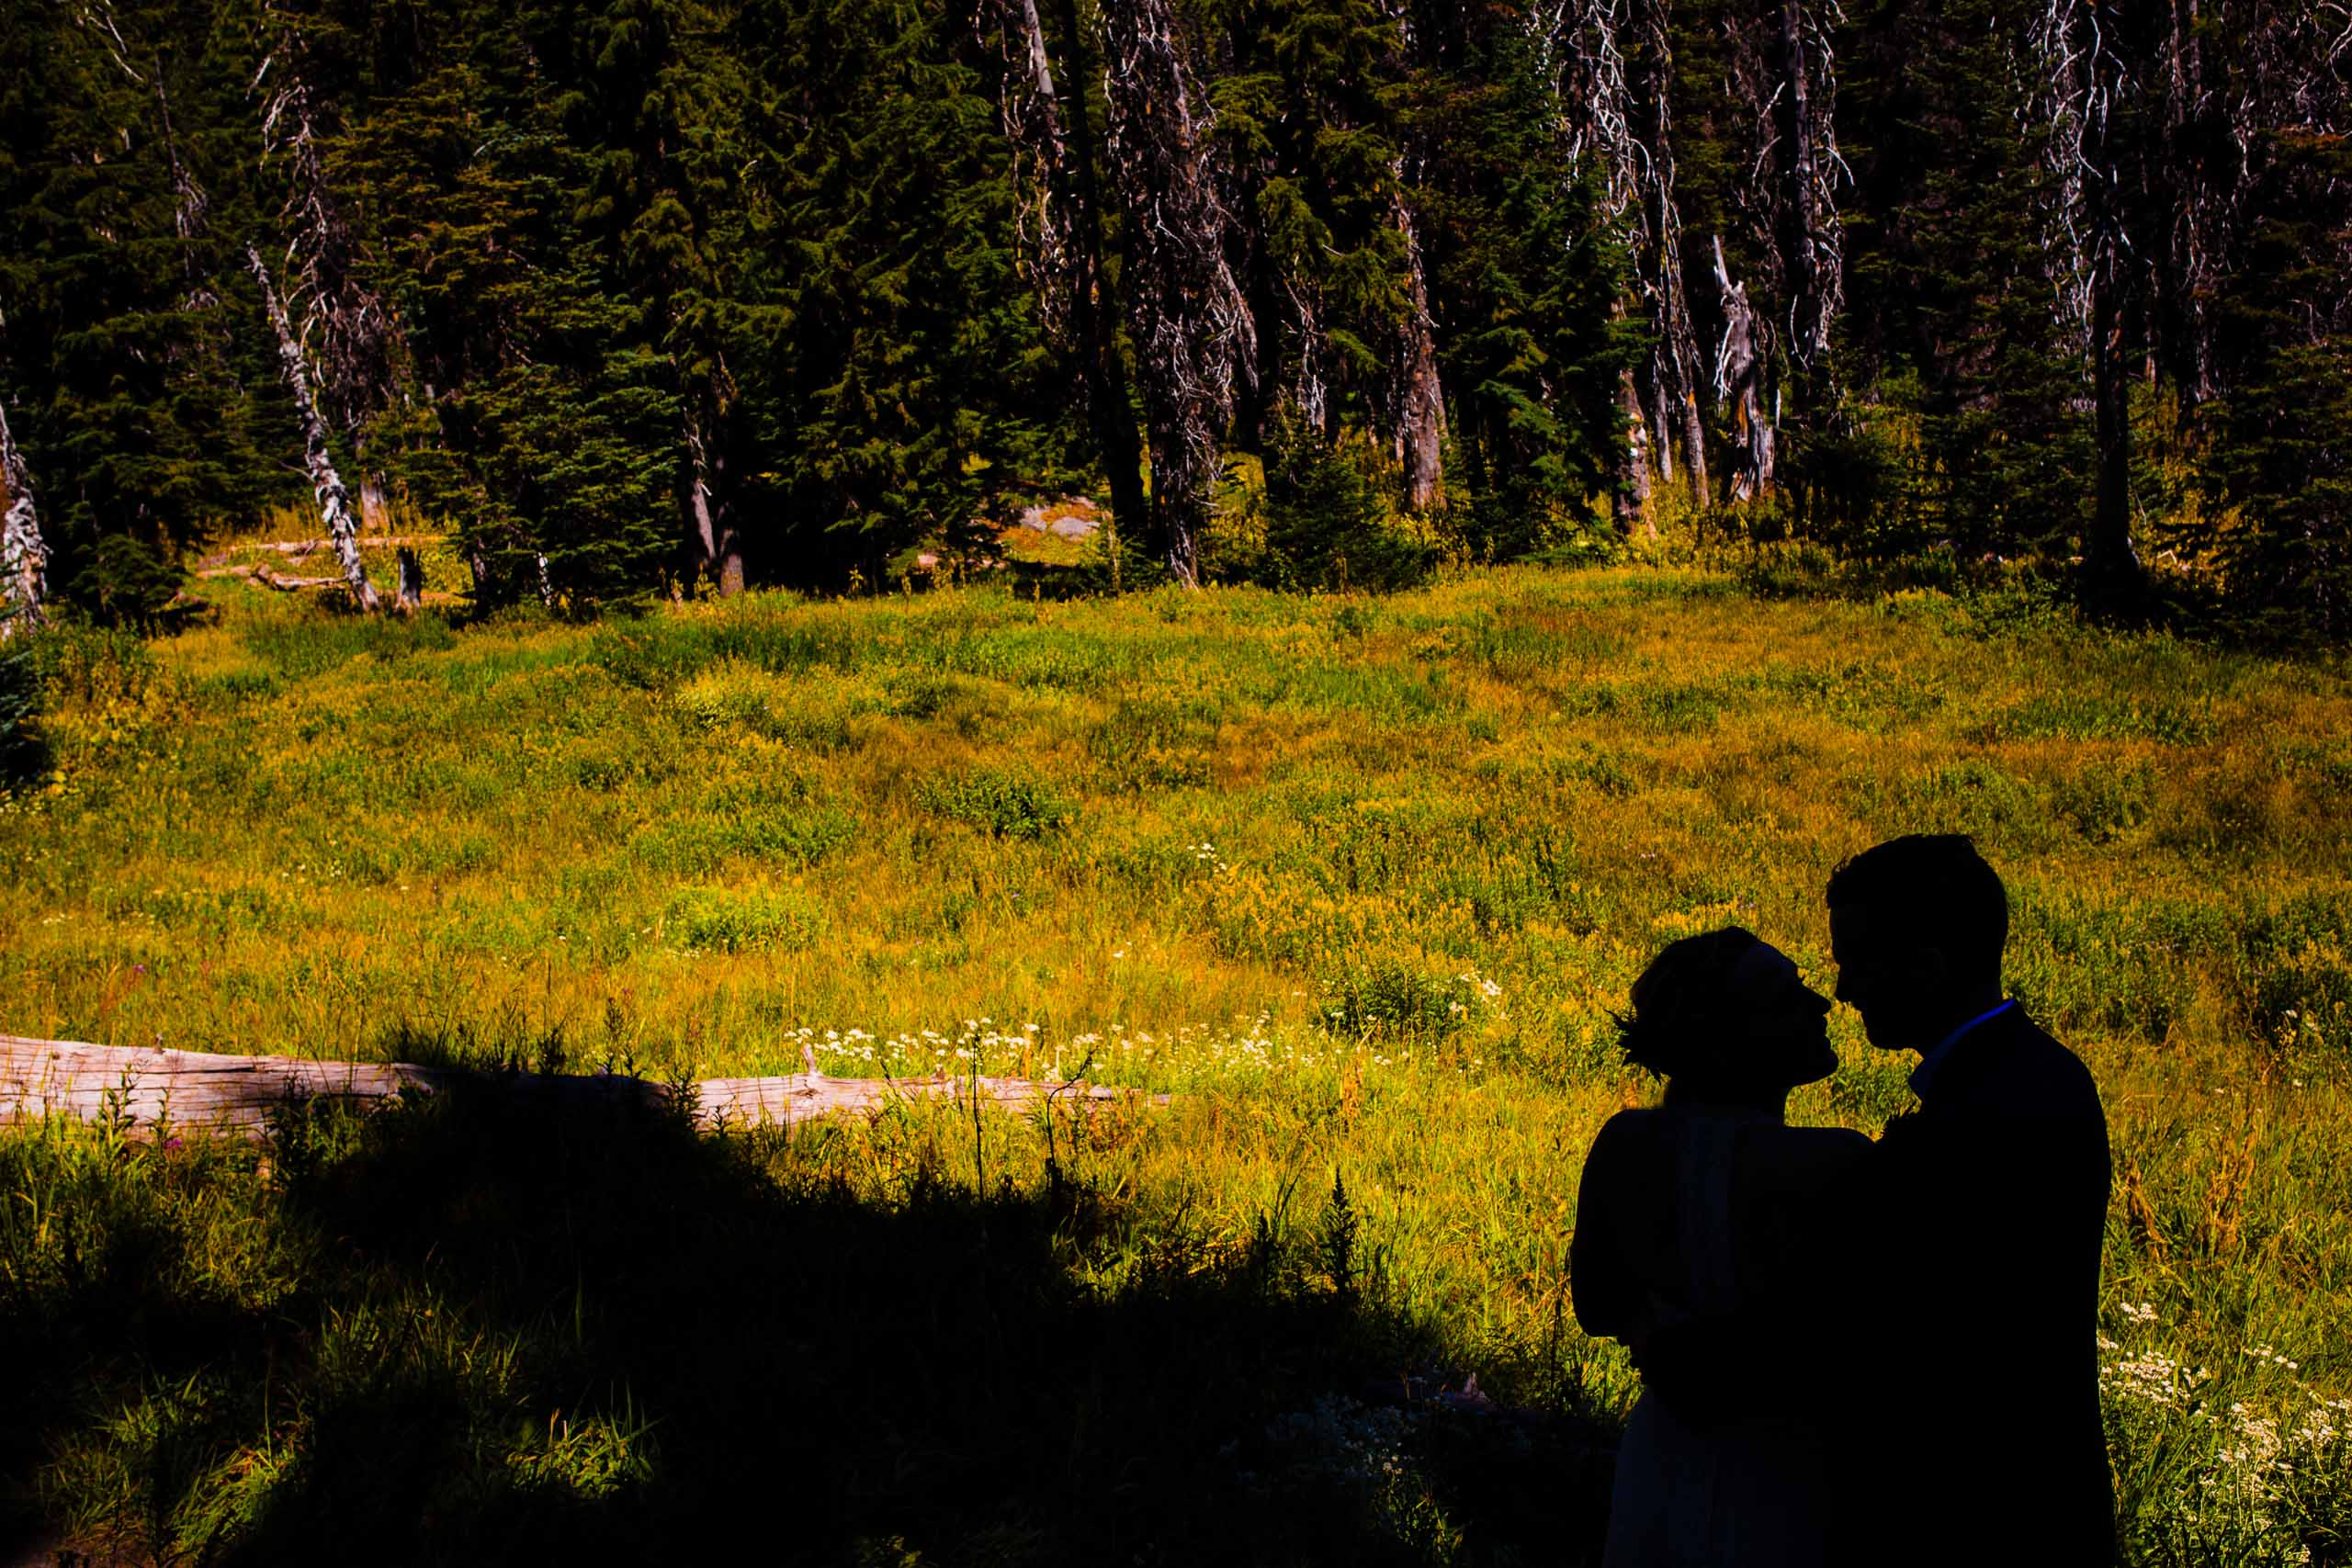 Bride and groom silhouette in deep nature at their Mt Hood Meadows wedding at Umbrella Falls